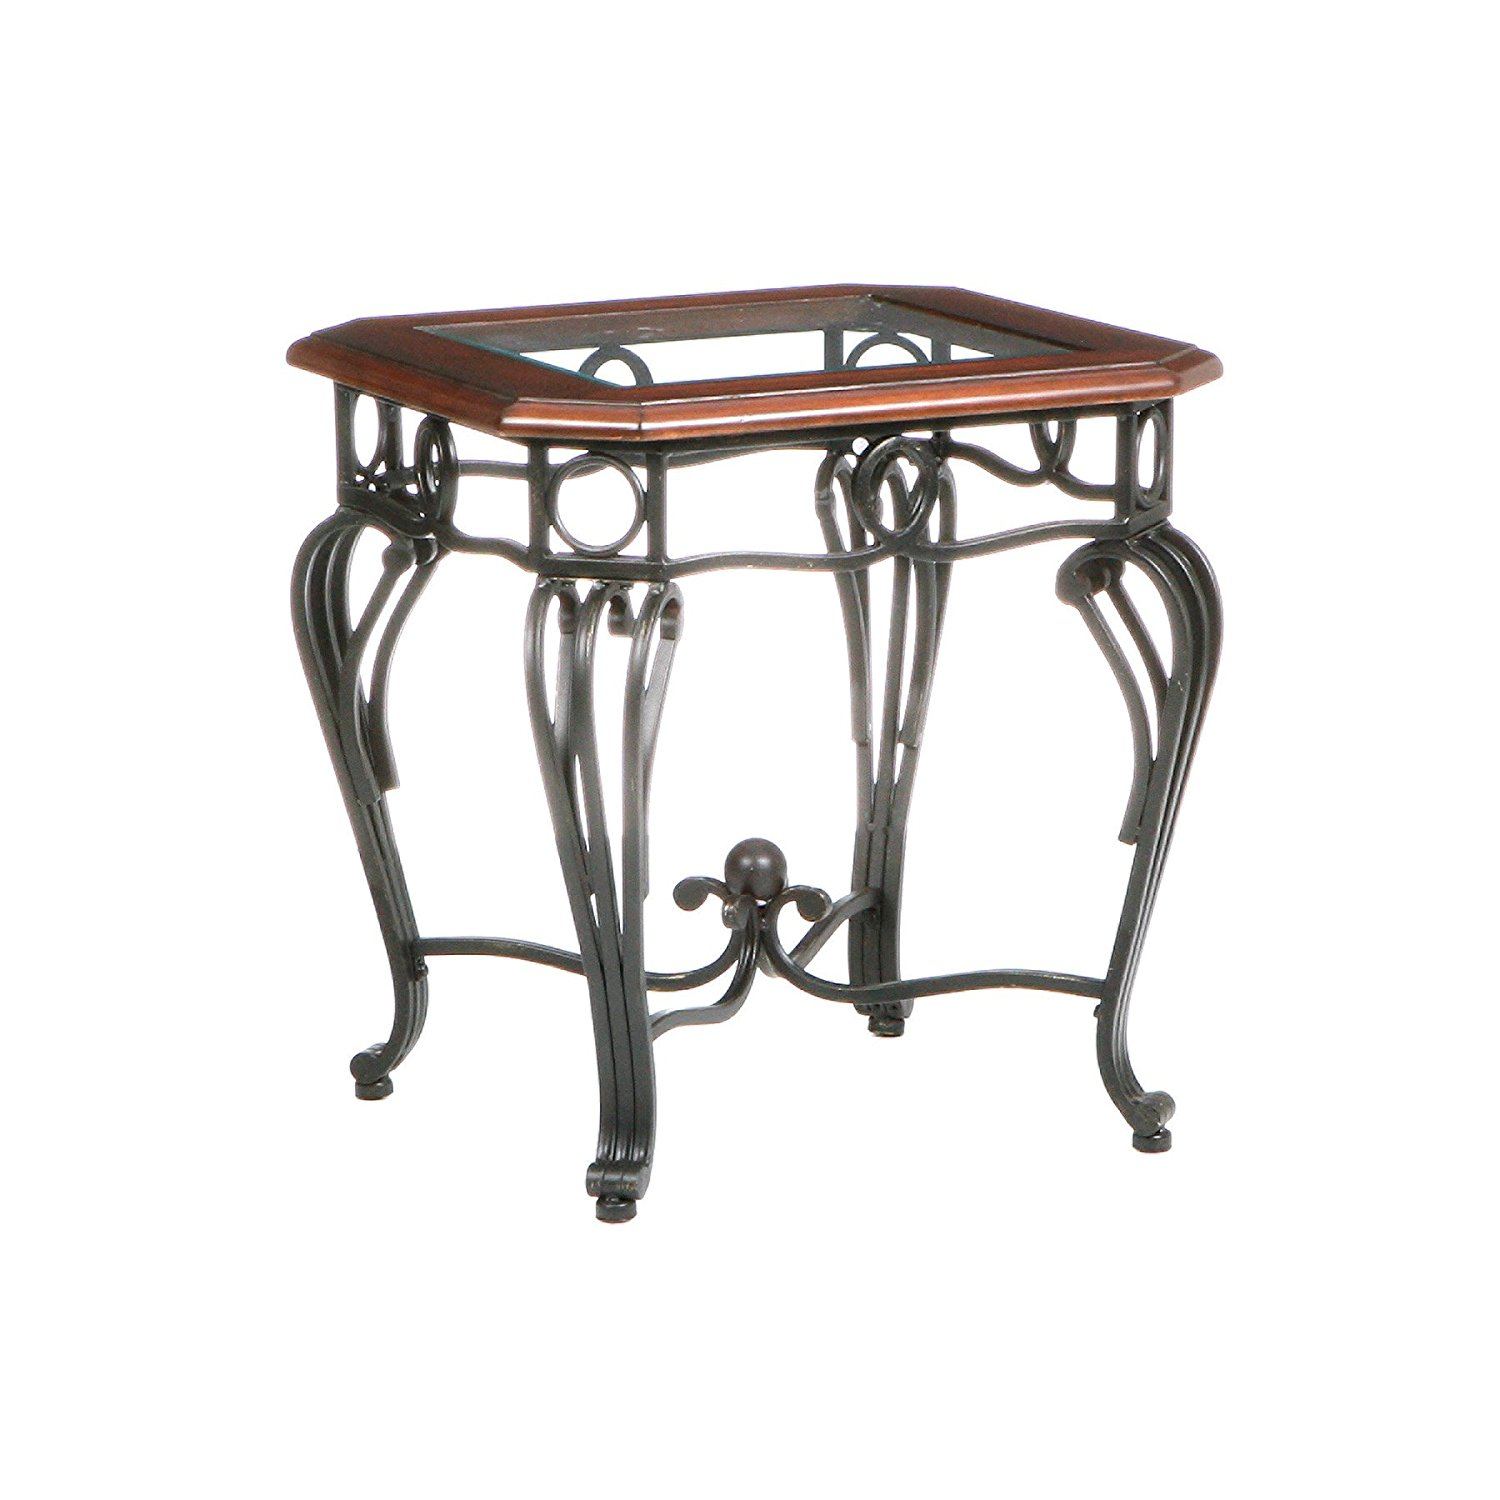 wrought iron end tables with glass tops home furniture modern accent top small metal patio table plastic garden side country cottage coffee childrens lamps cool drum thrones and